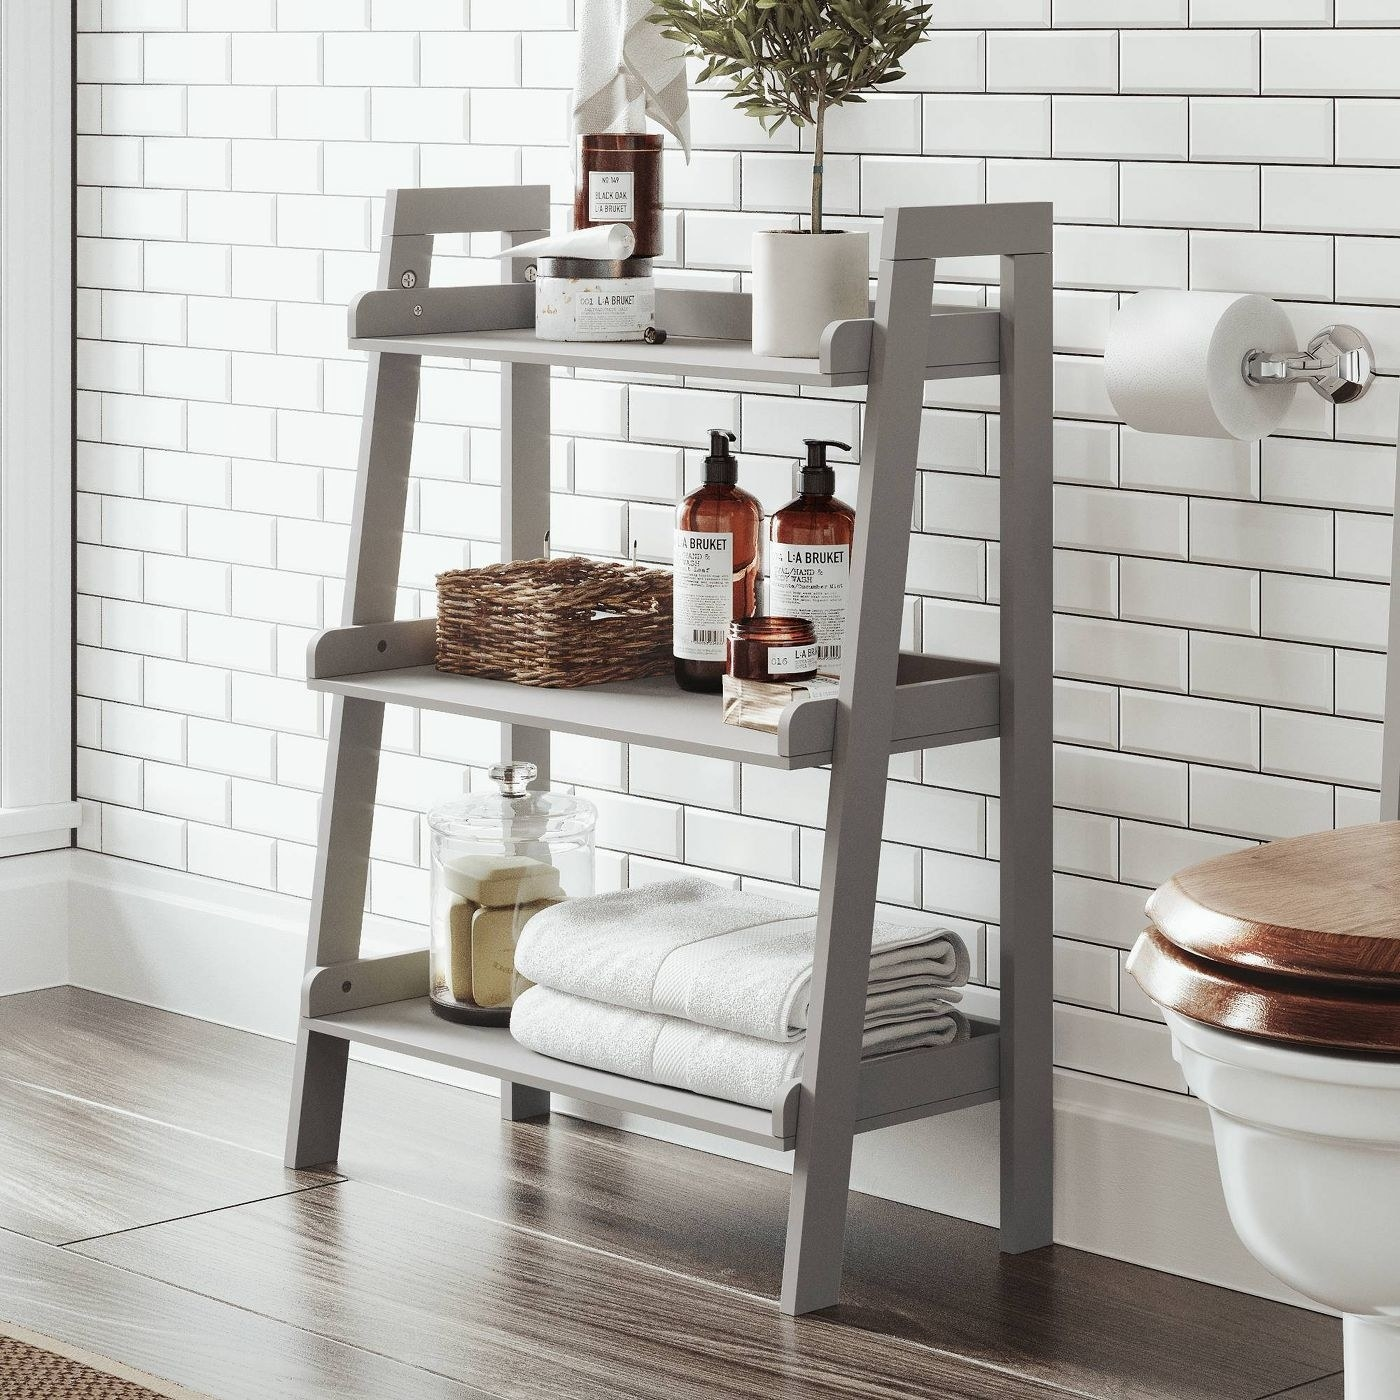 the gray ladder with three steps